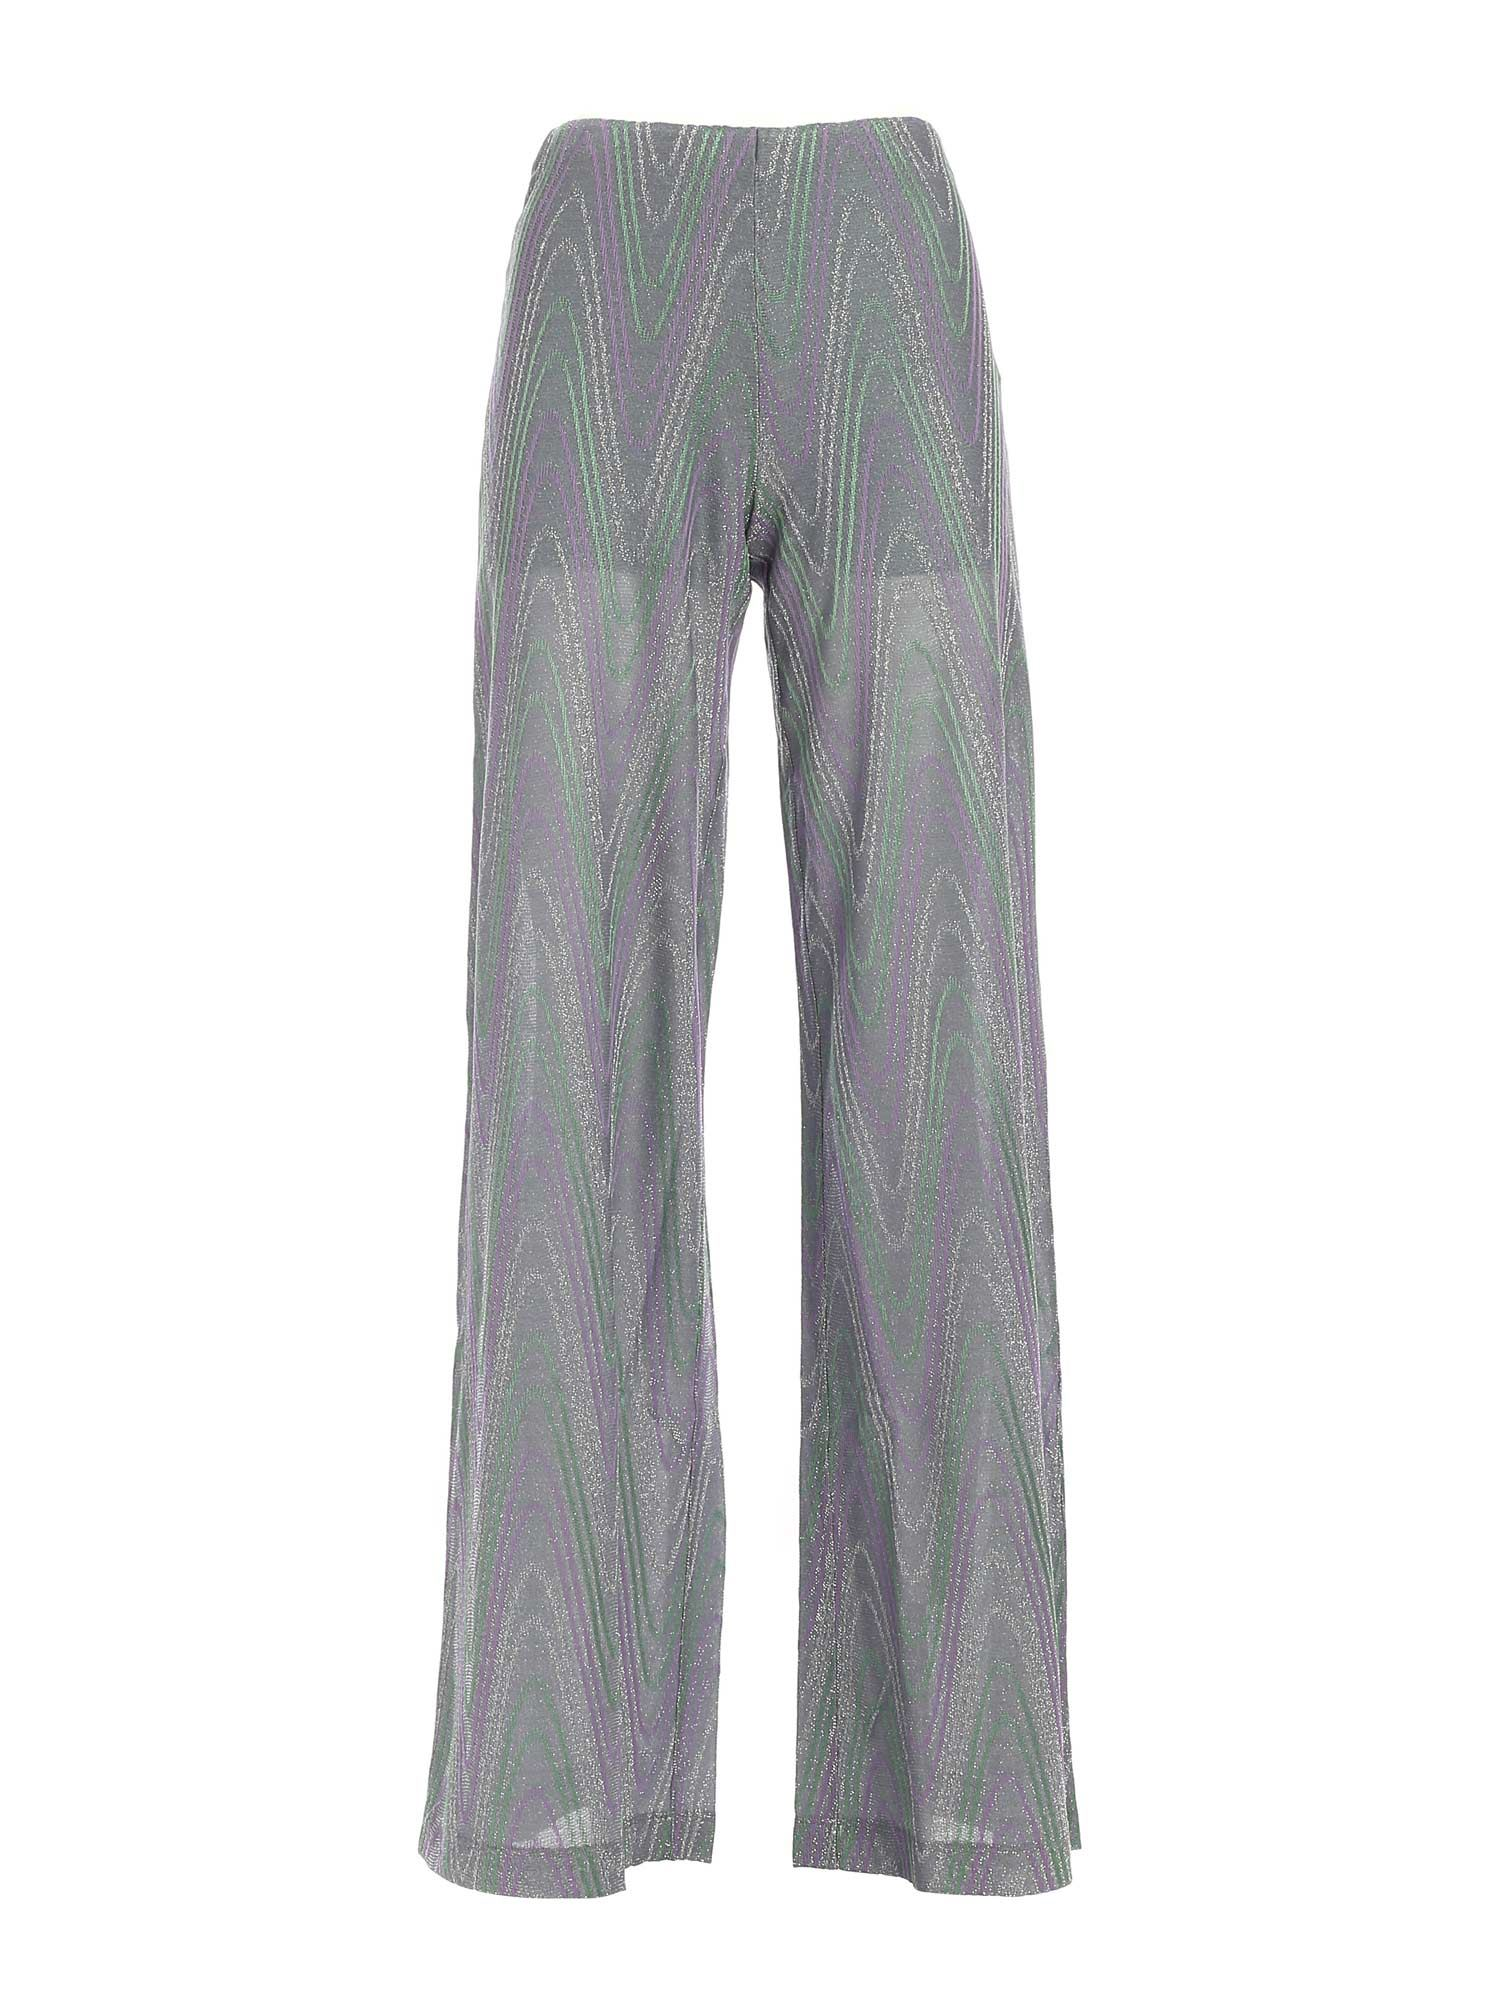 M Missoni Cottons LAMÉ KNITTED PANTS IN GREEN AND PURPLE